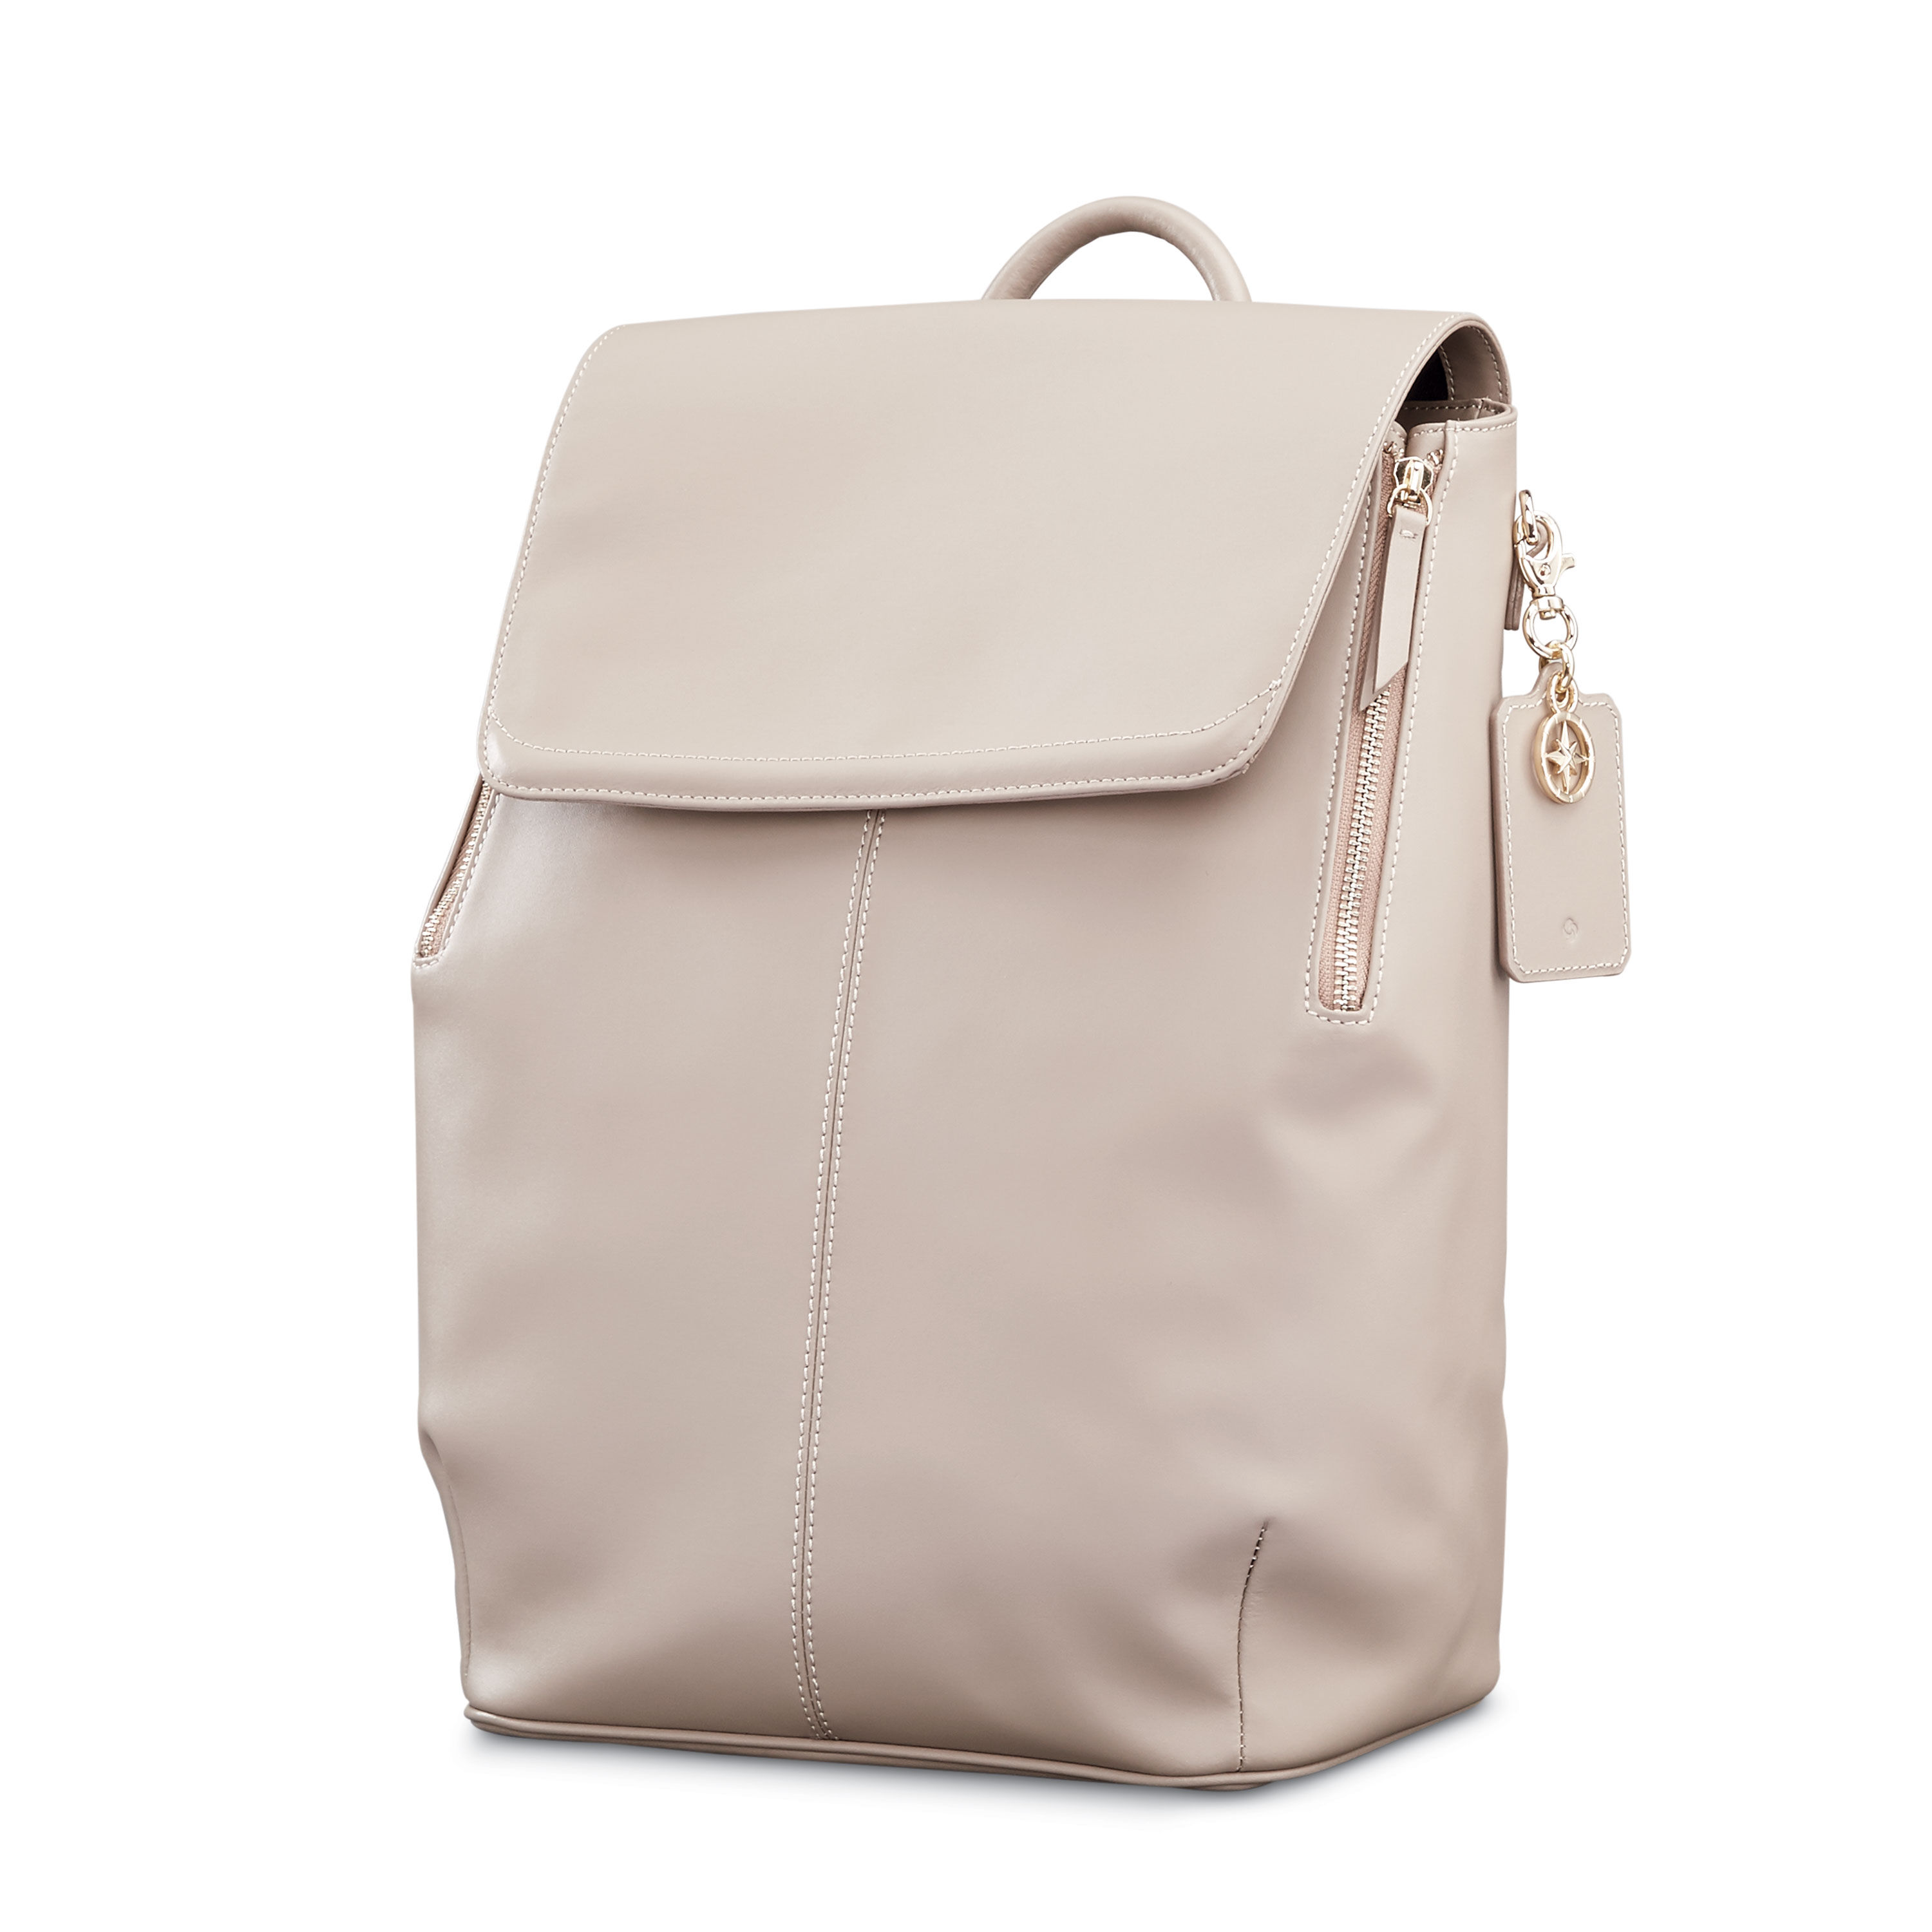 Leather Shop Samsonite Ladies Leather Hamptons Backpack